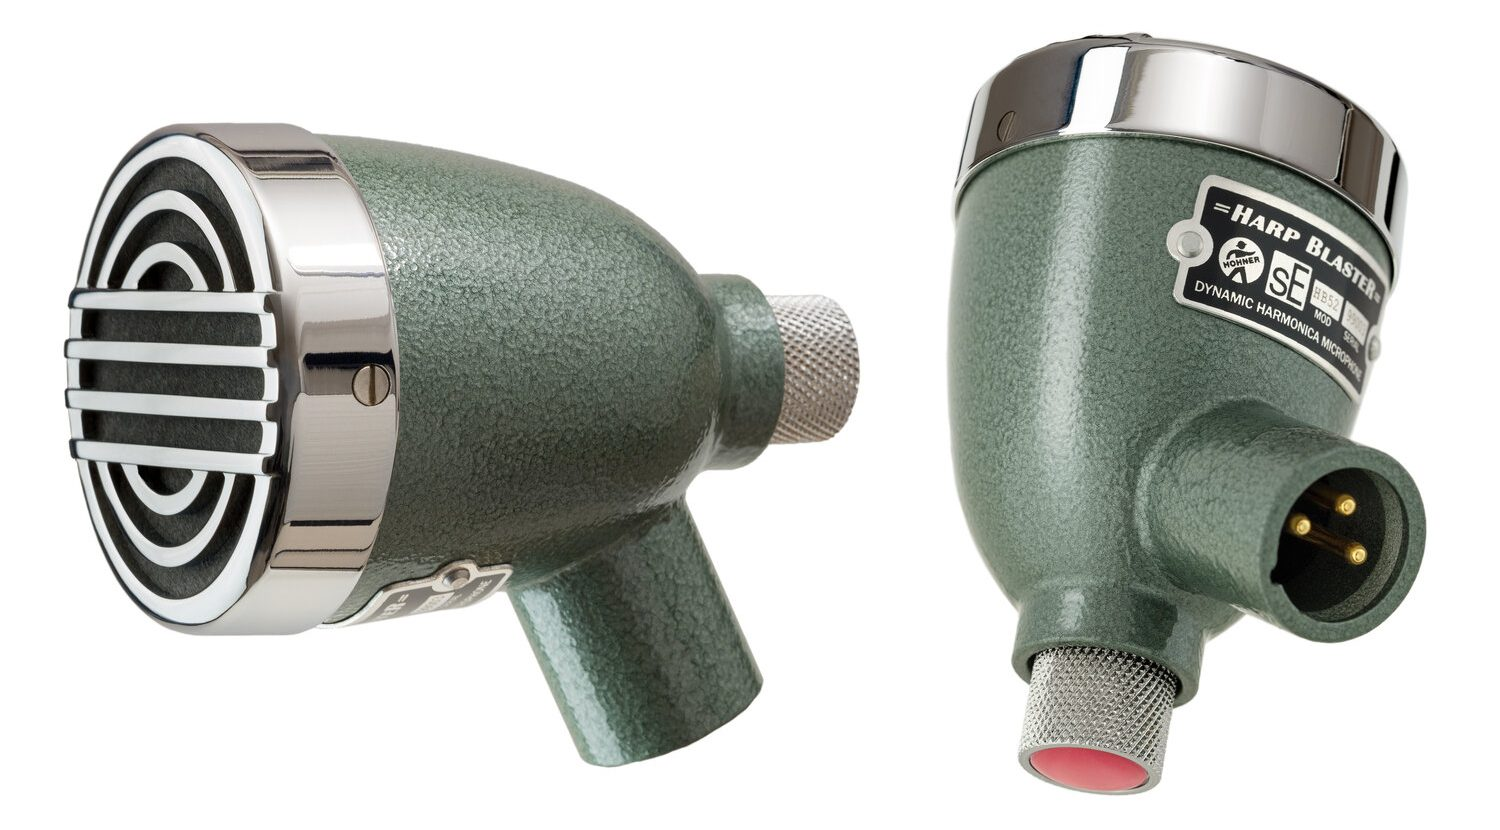 The New Standard in Harp Microphones: The Harp Blaster HB52 from sE and HOHNER